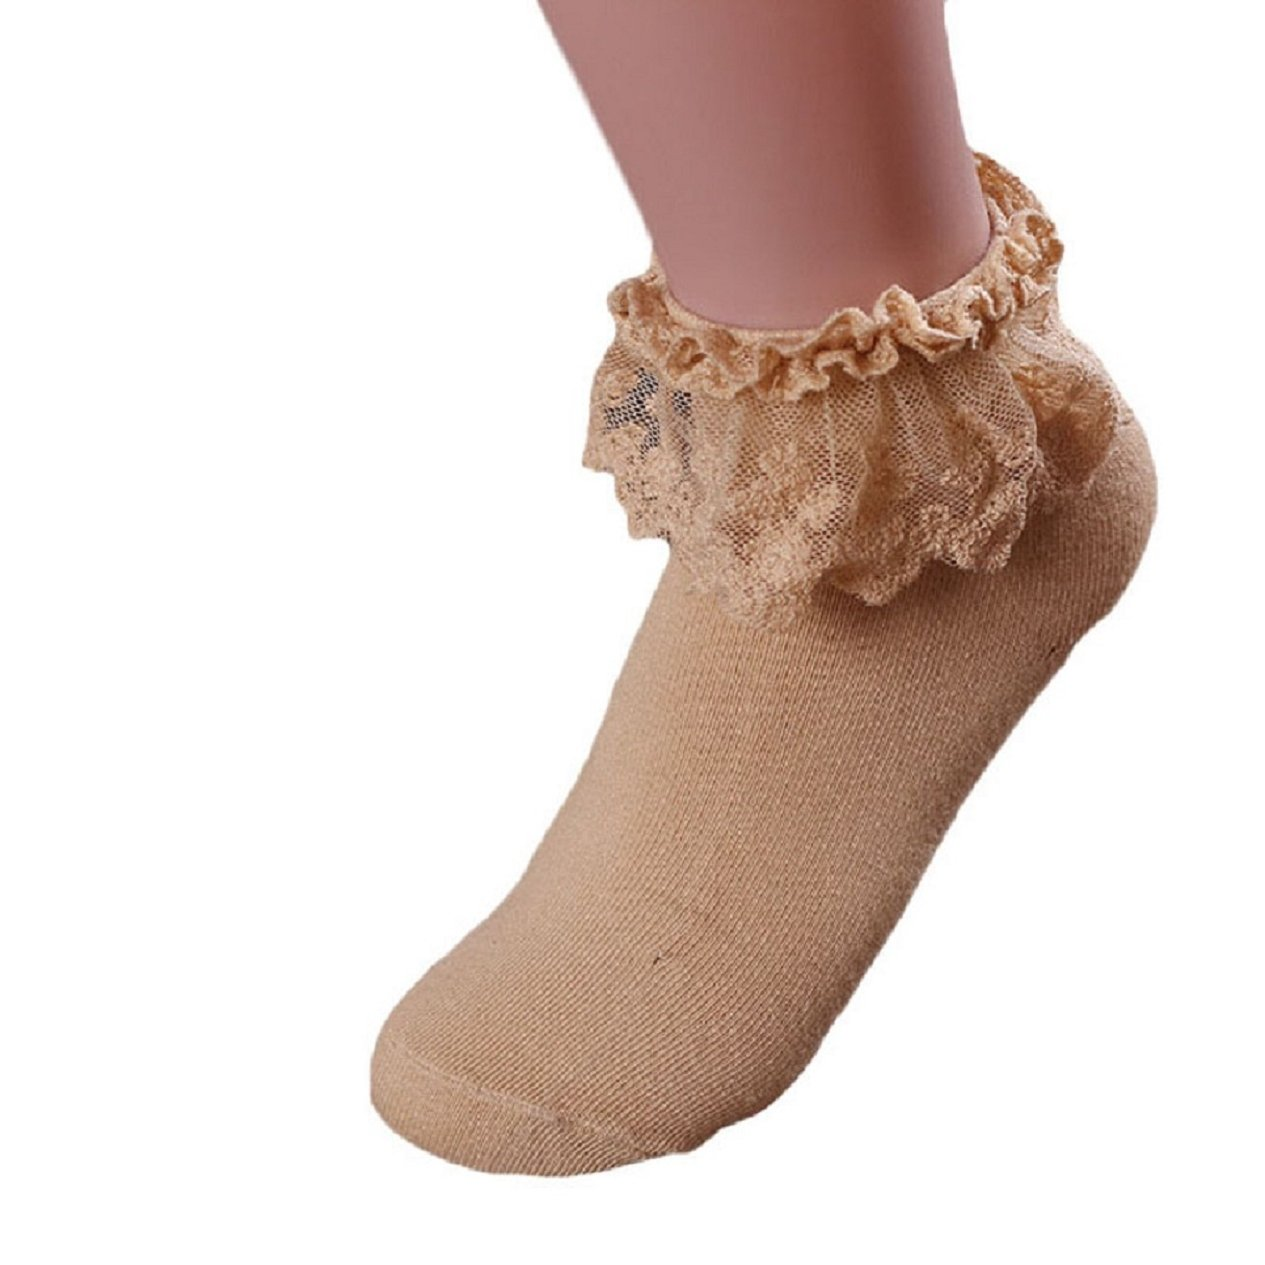 Amazon.com: Malloom 2016 Fall Vintage Lace Ruffle Frilly Ankle Socks Princess Girl Soft Socks: Clothing